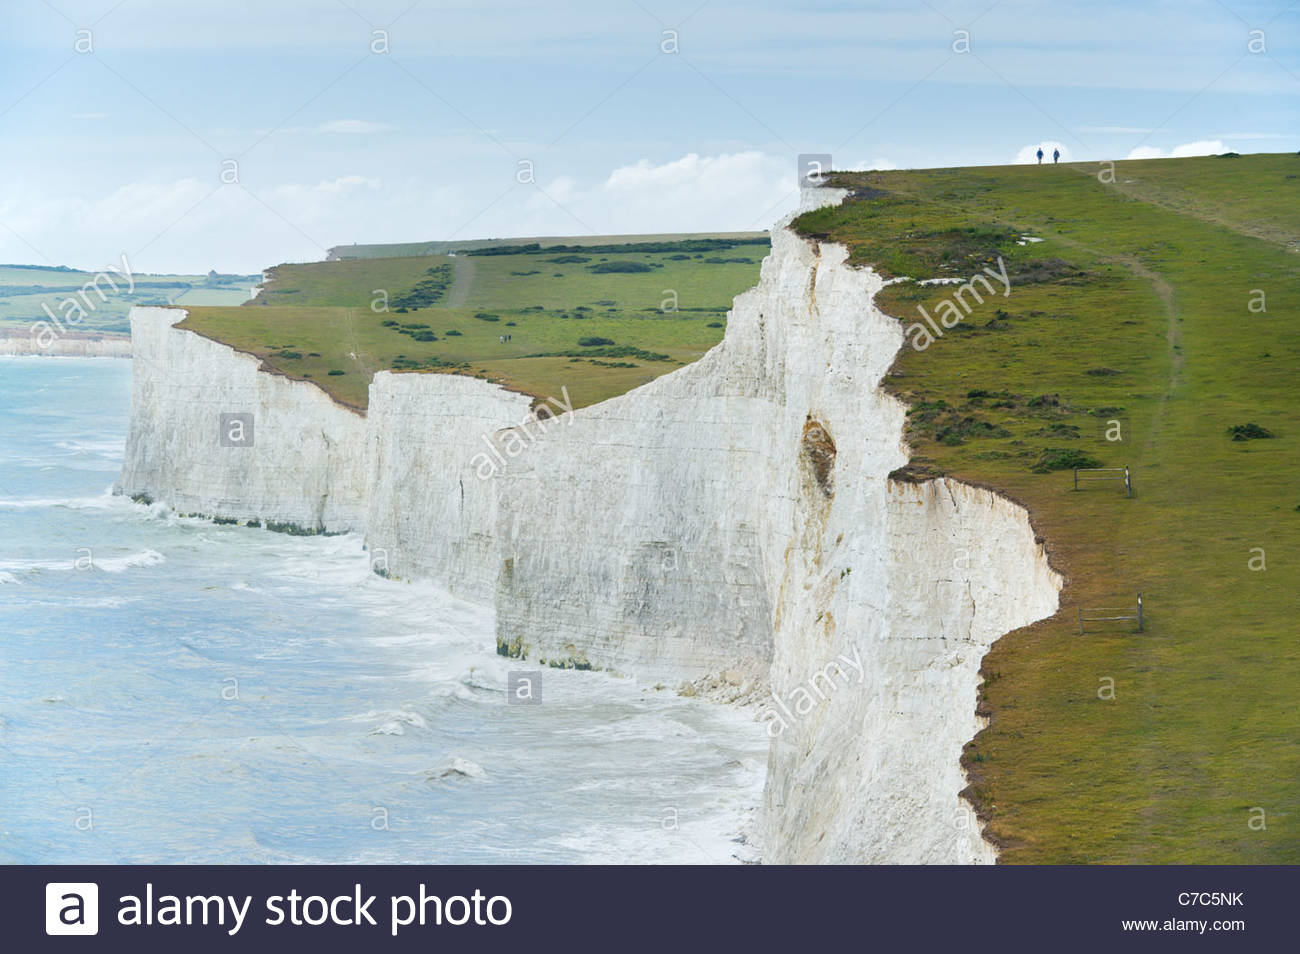 Les randonneurs au-dessus des falaises des sept Sœurs, le Parc National des South Downs, East Sussex, Angleterre. Photo Stock